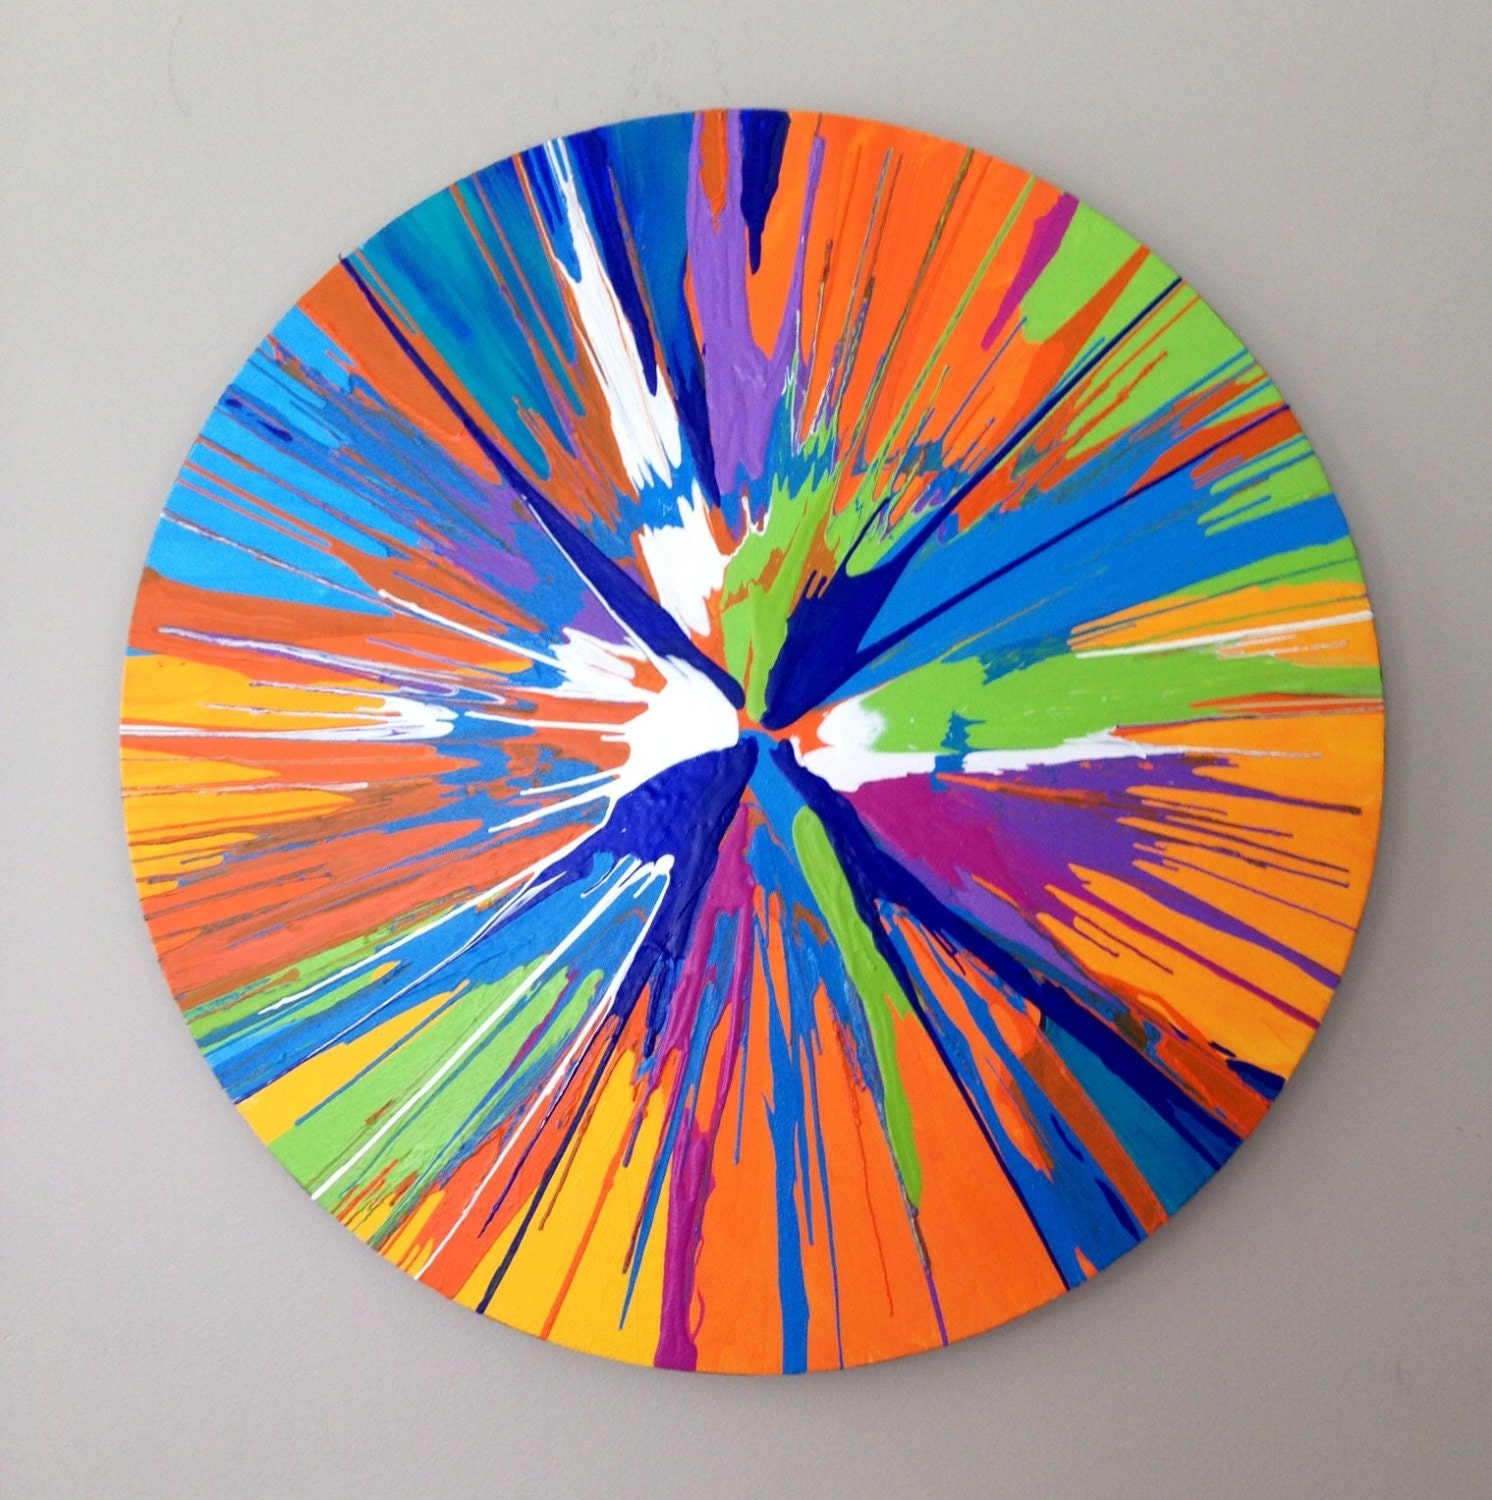 round spin painting large abstract blue green orange 20